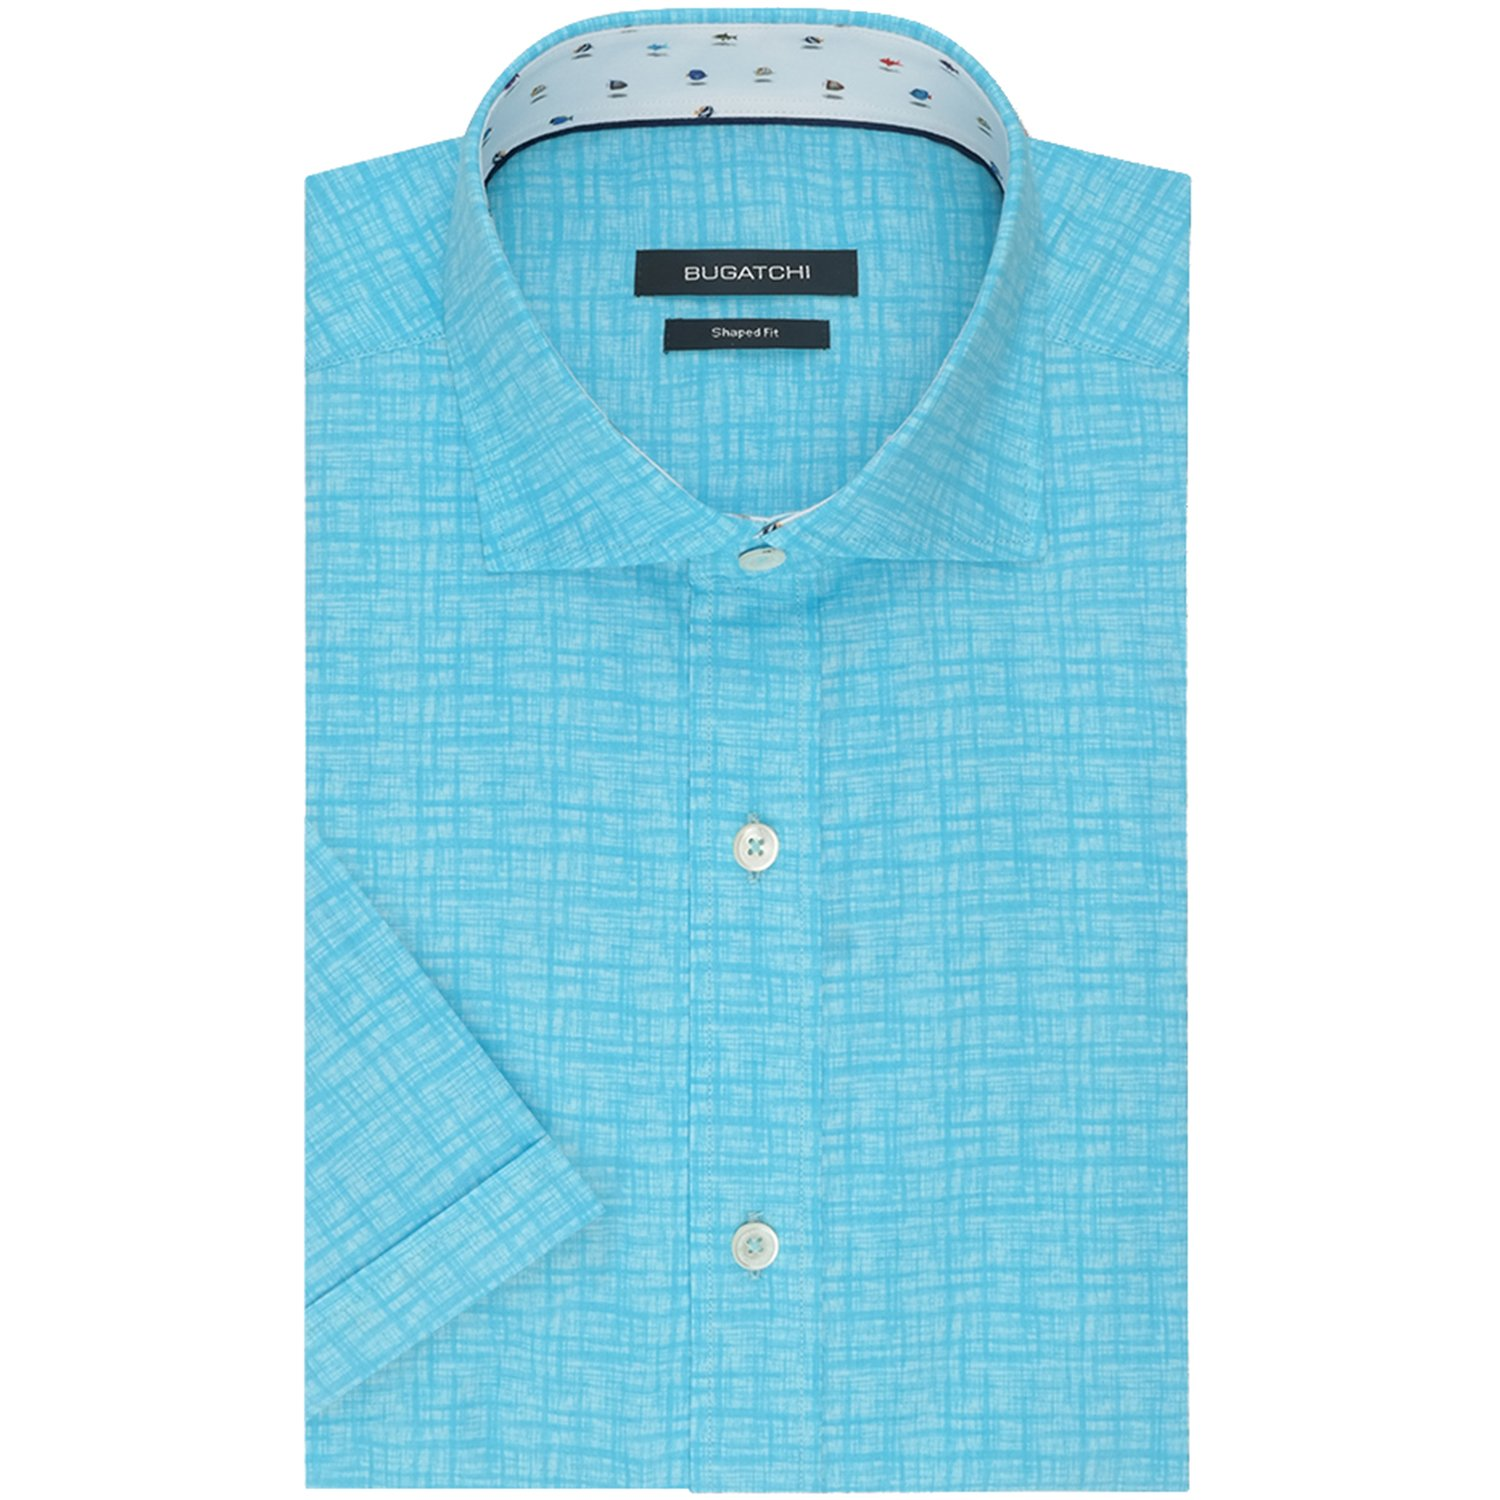 80858cc26 Escape to youre the island life in the Bugatchi Castaway Sport Shirt in Air  Blue. The Castaway short sleeve mens button up shirt by Bugatchi features  an all ...